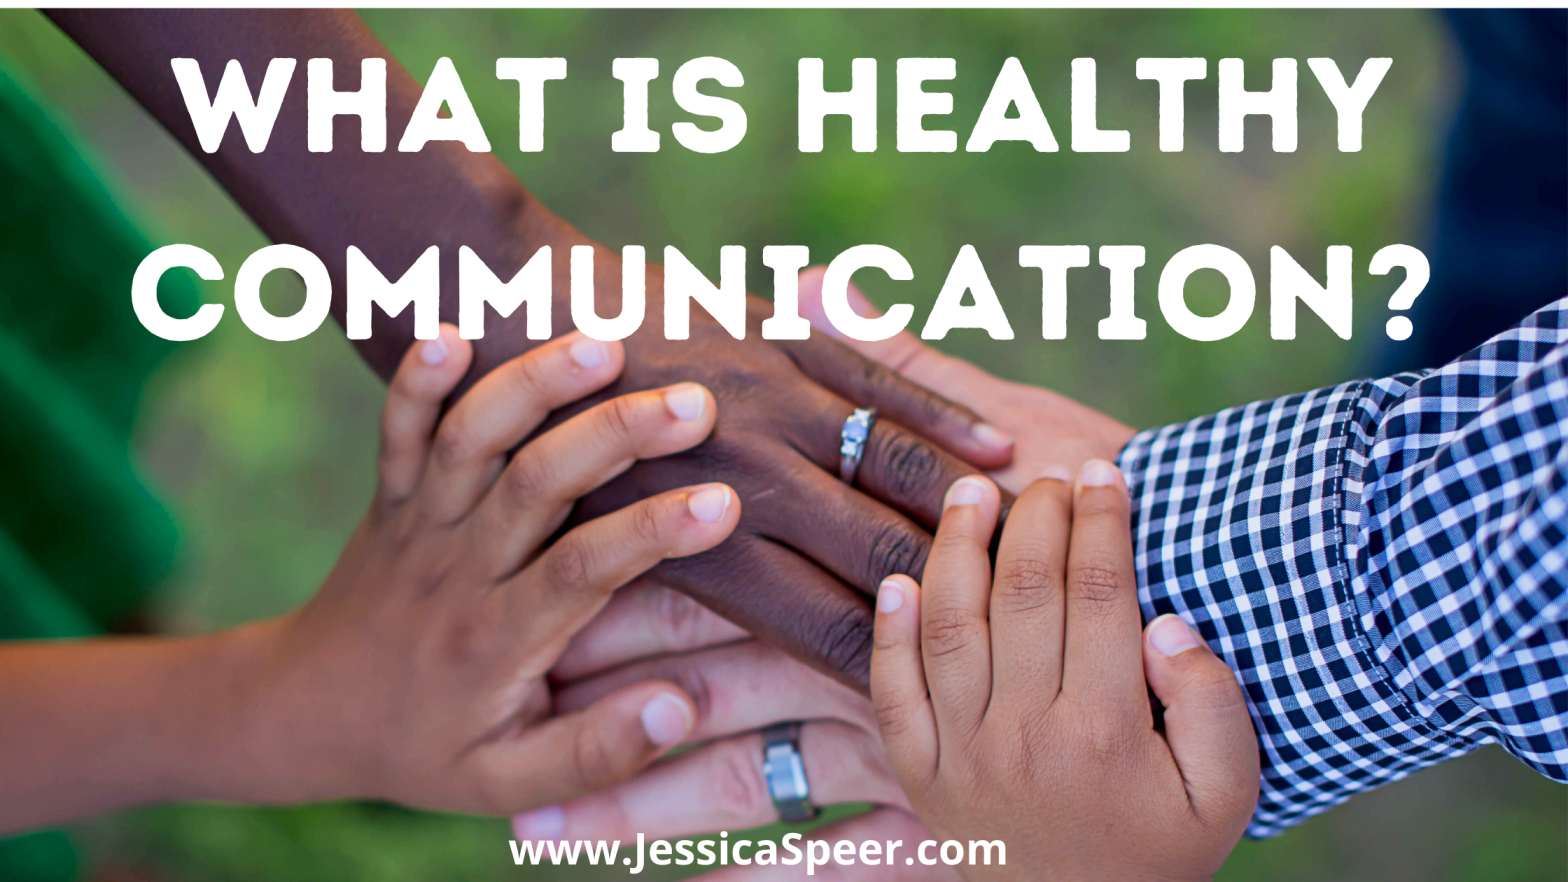 image of hands coming together plus the text What Is Healthy Communication